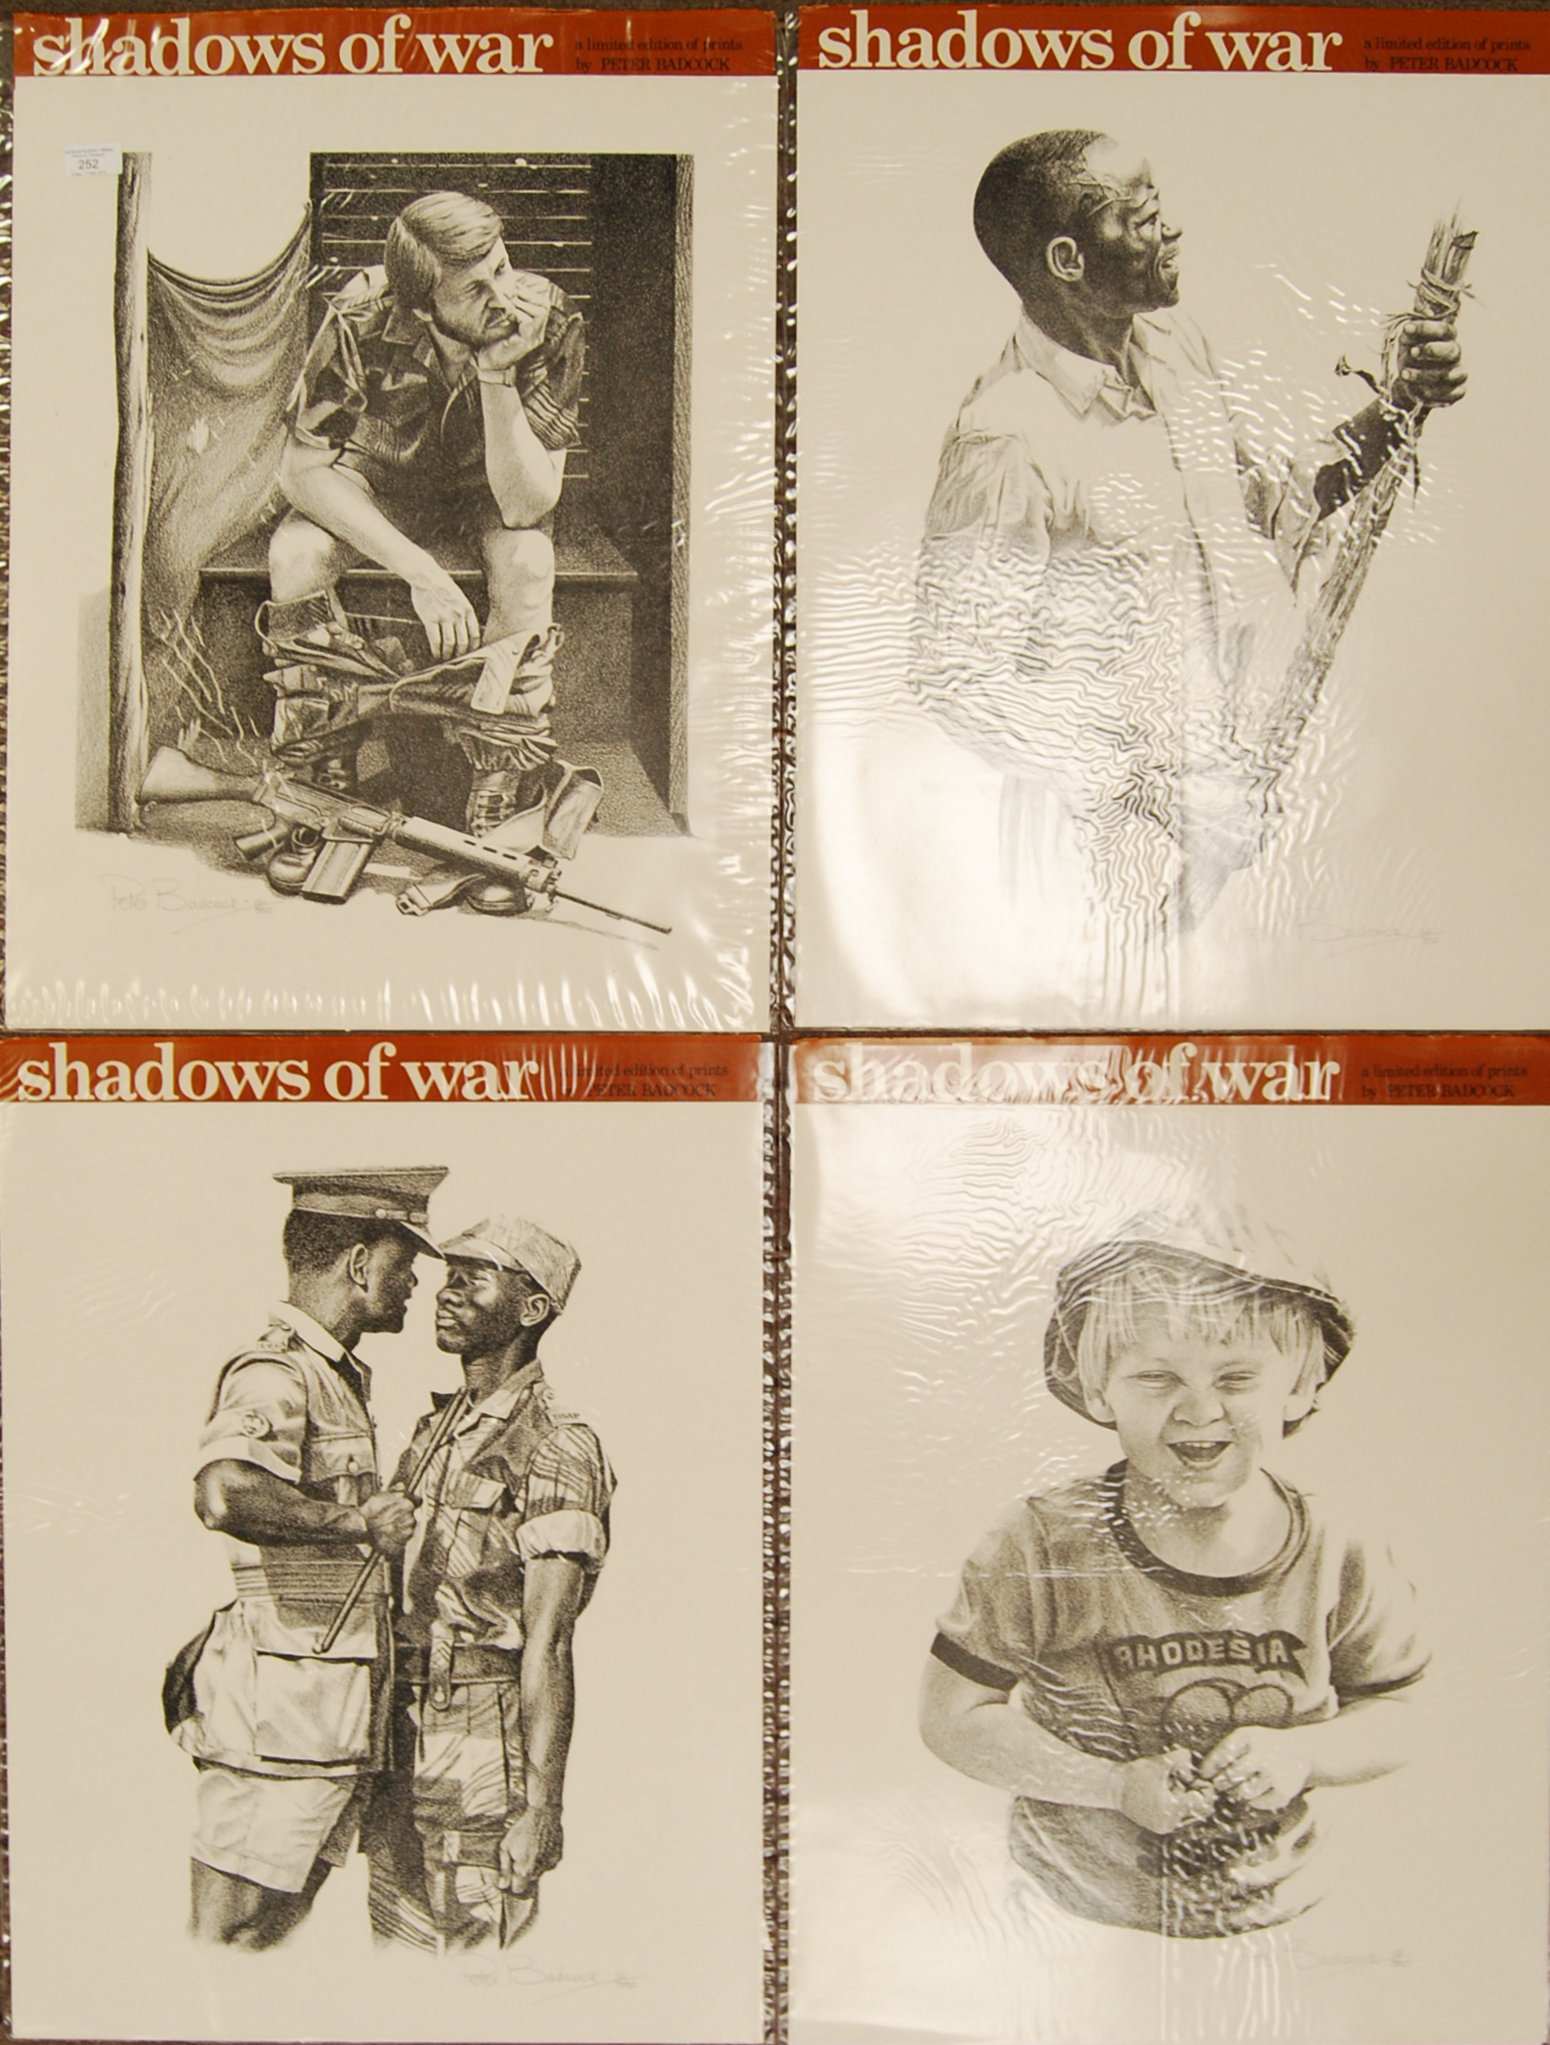 RHODESIA SHADOWS OF WAR LIMITED EDITION PRINTS BY PETER BADCOCK